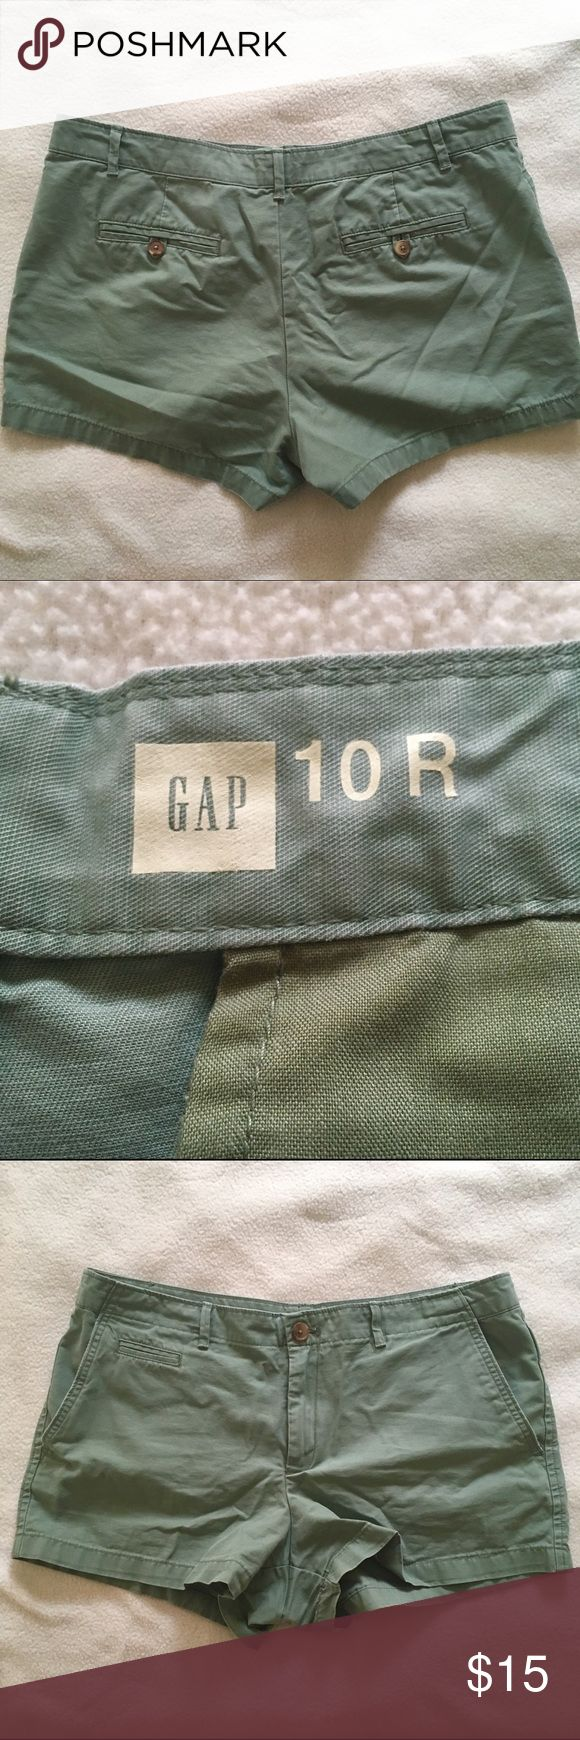 "Gap Olive Green Shorts Cute little olive green shorts from Gap! Size 10, with a 2.5"" inseam. Hip pockets, tiny front pocket and two back pockets with button closure. Purchased at the end of last season and never worn, but they don't fit me this spring 😫. Perfect condition! GAP Shorts"